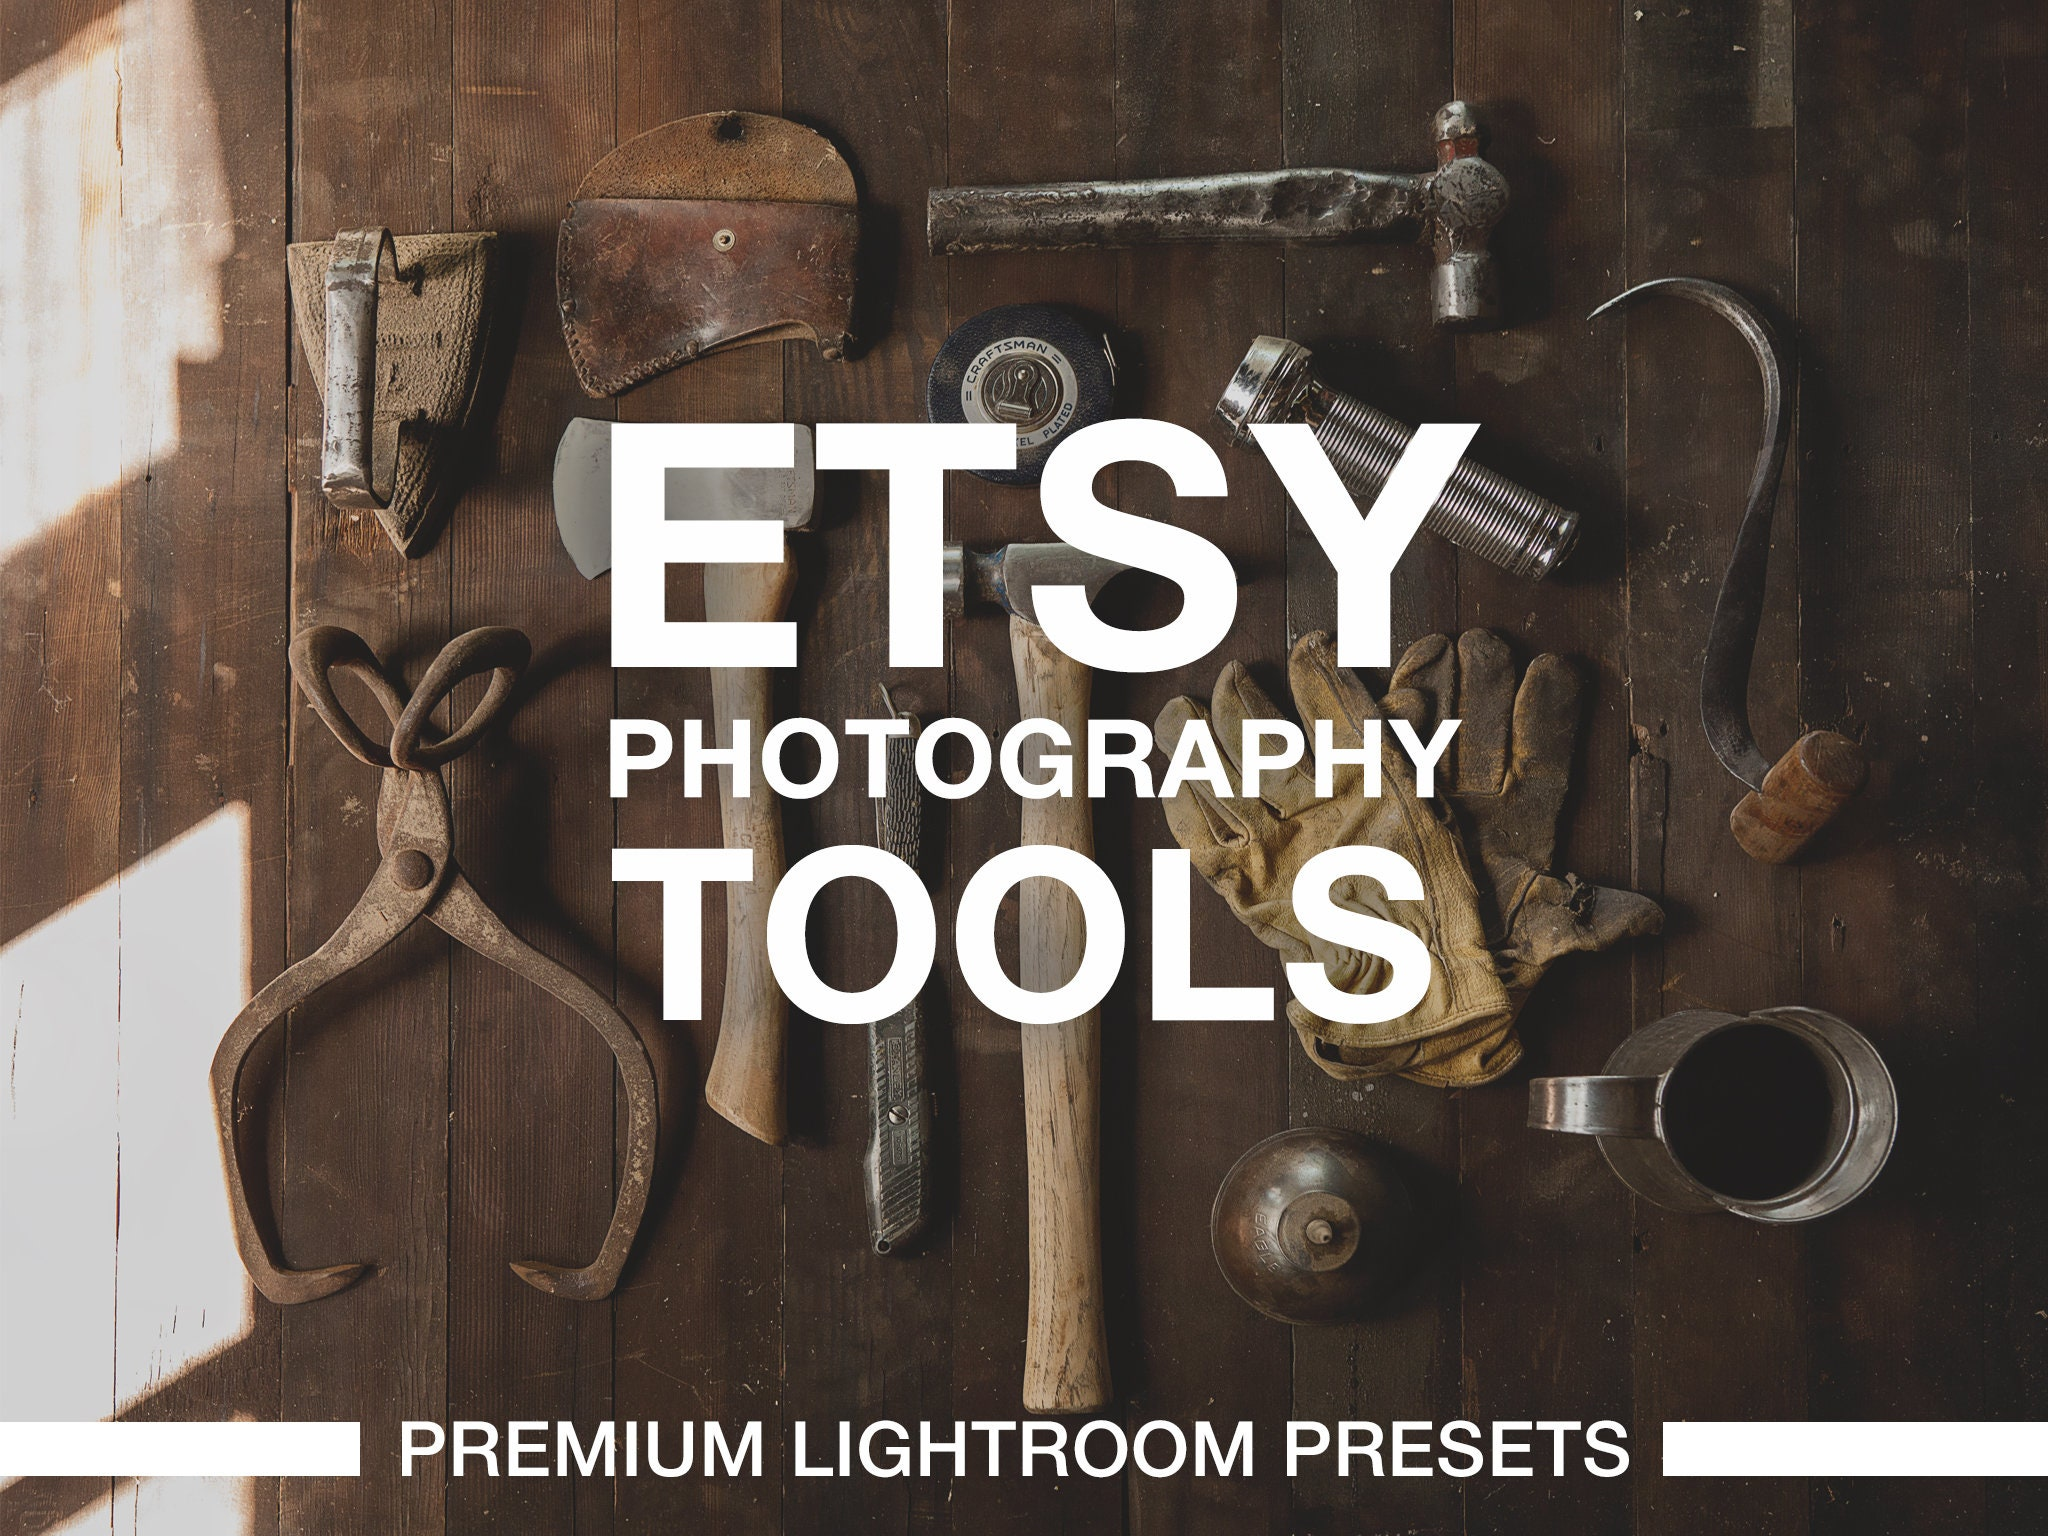 Etsy Photography Lightroom Presets, Product Photography Presets, Etsy  Photos Filters, Good Etsy Photos, Craft Photo Editing, Post Processing